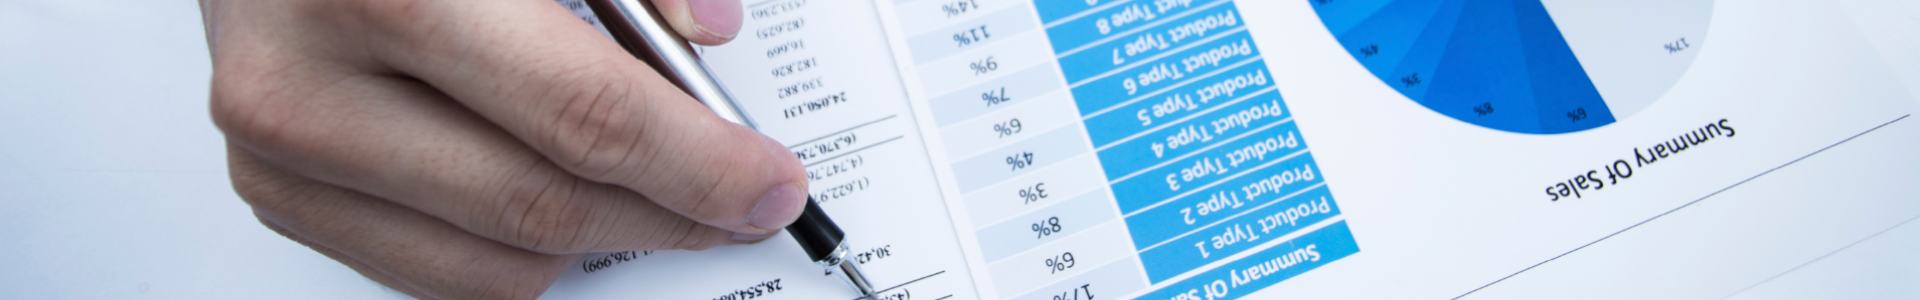 Establish and Maintain Effective Performance Review Process